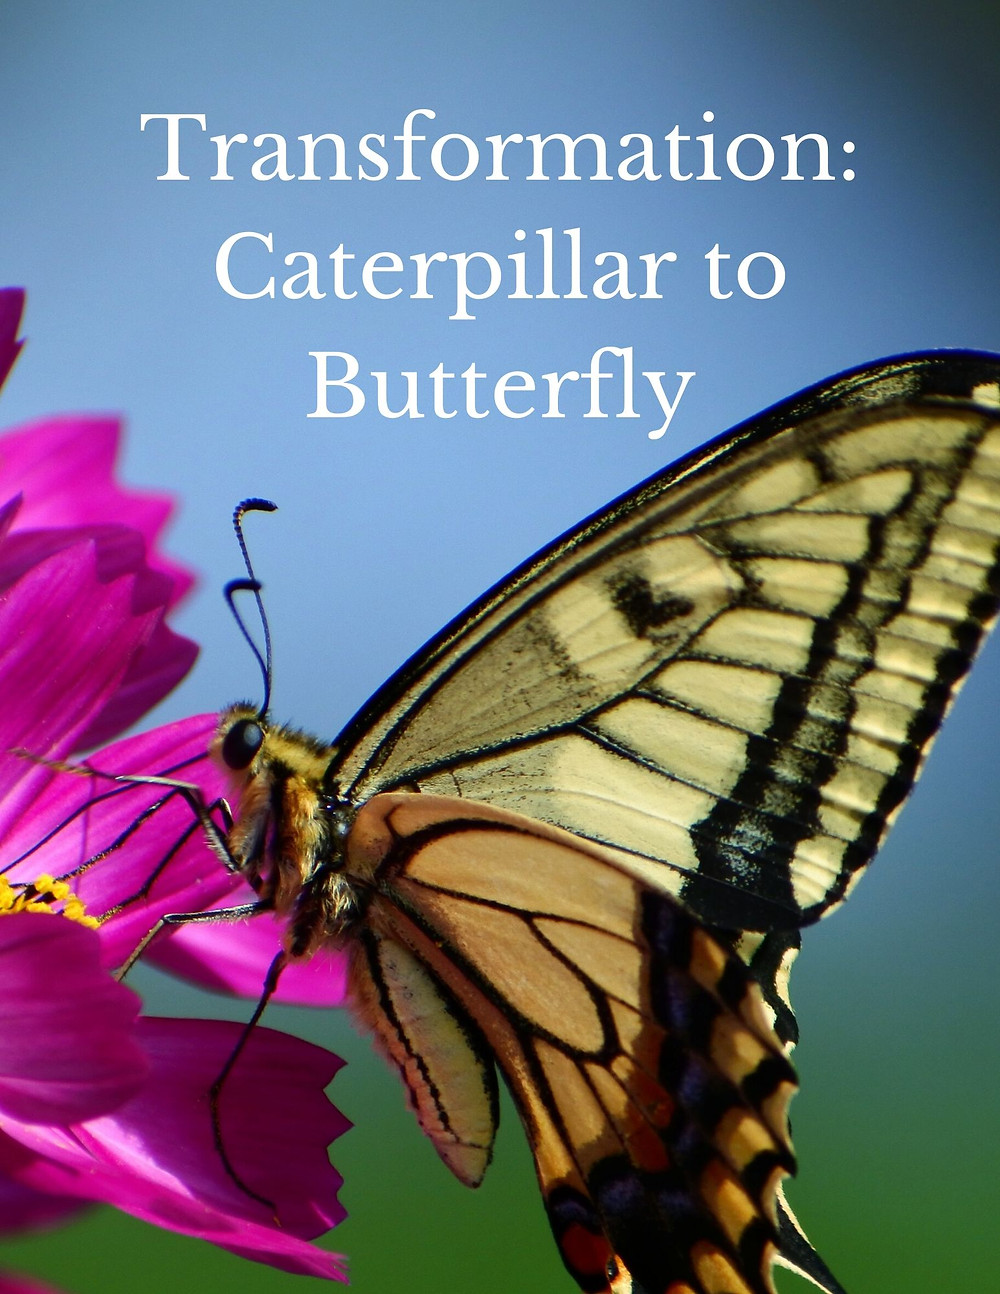 Transformation: Caterpillar to Butterfly